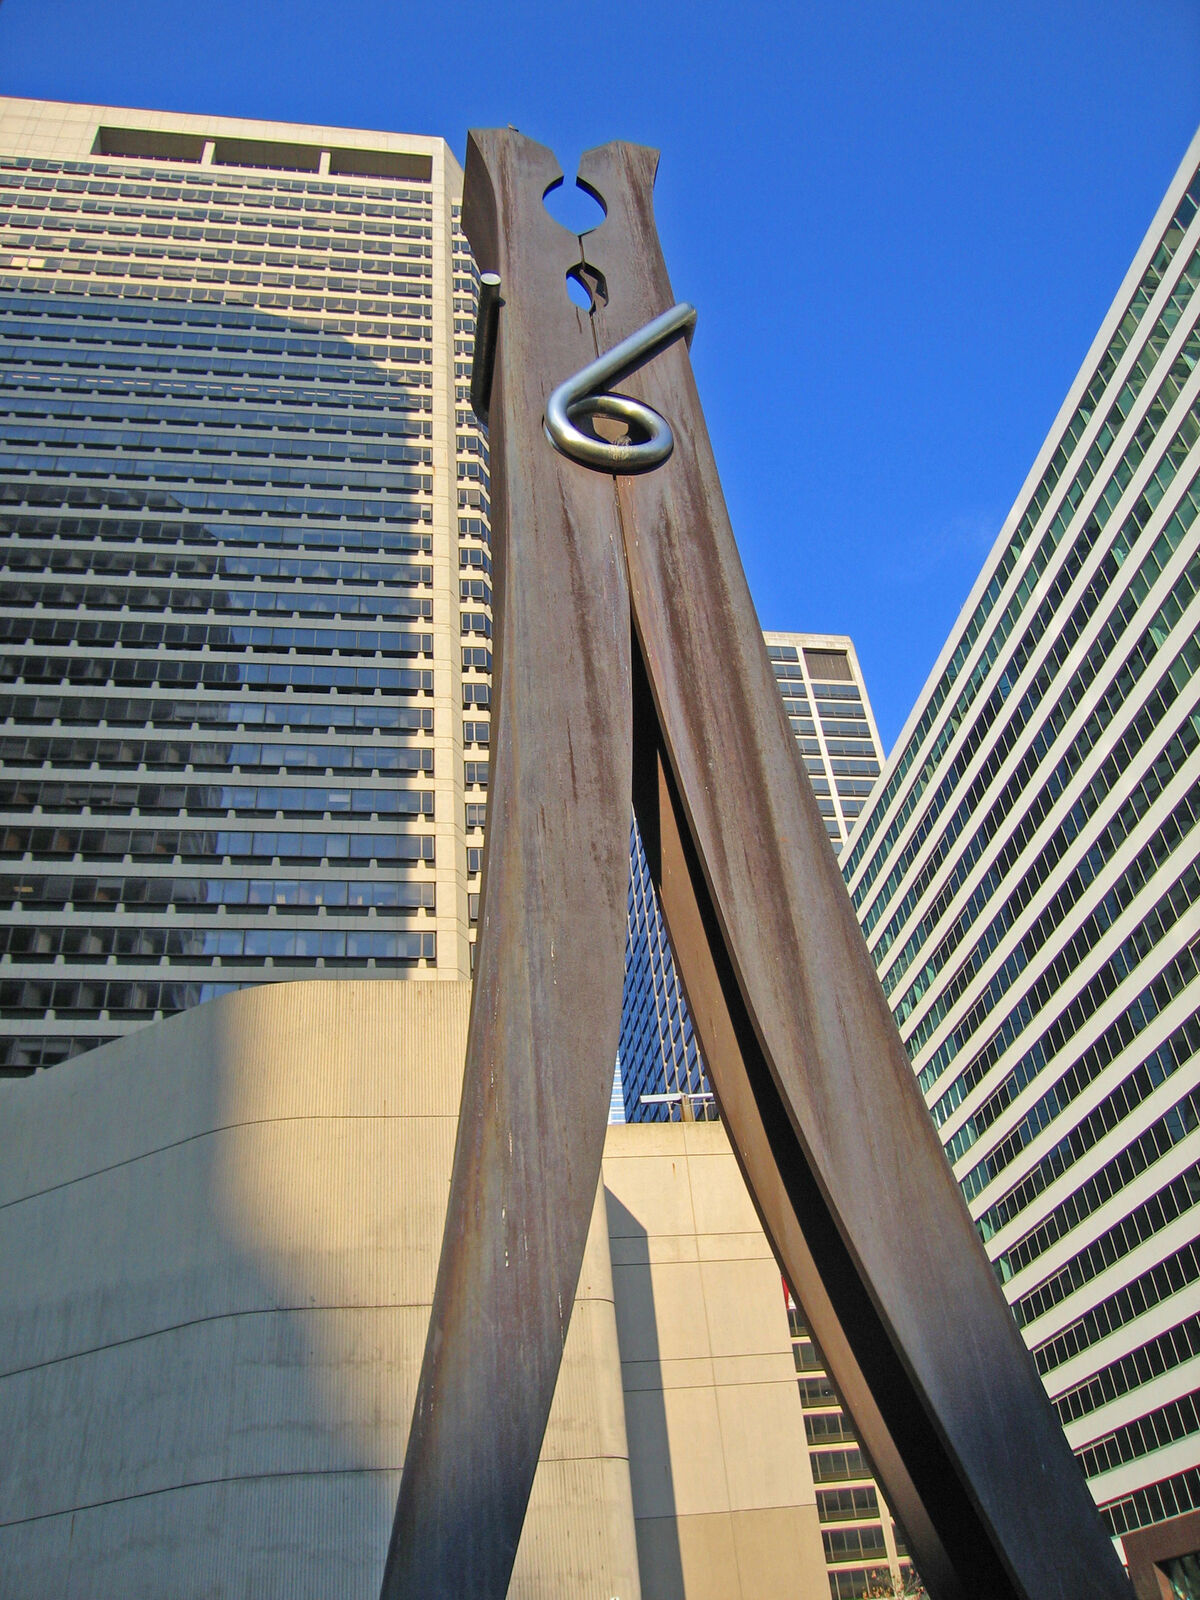 Claes Oldenburg's Clothespin (1976) was created through Philadelphia's Percent for Art program, the oldest in the U.S. Photo: John Vosburgh via Flickr